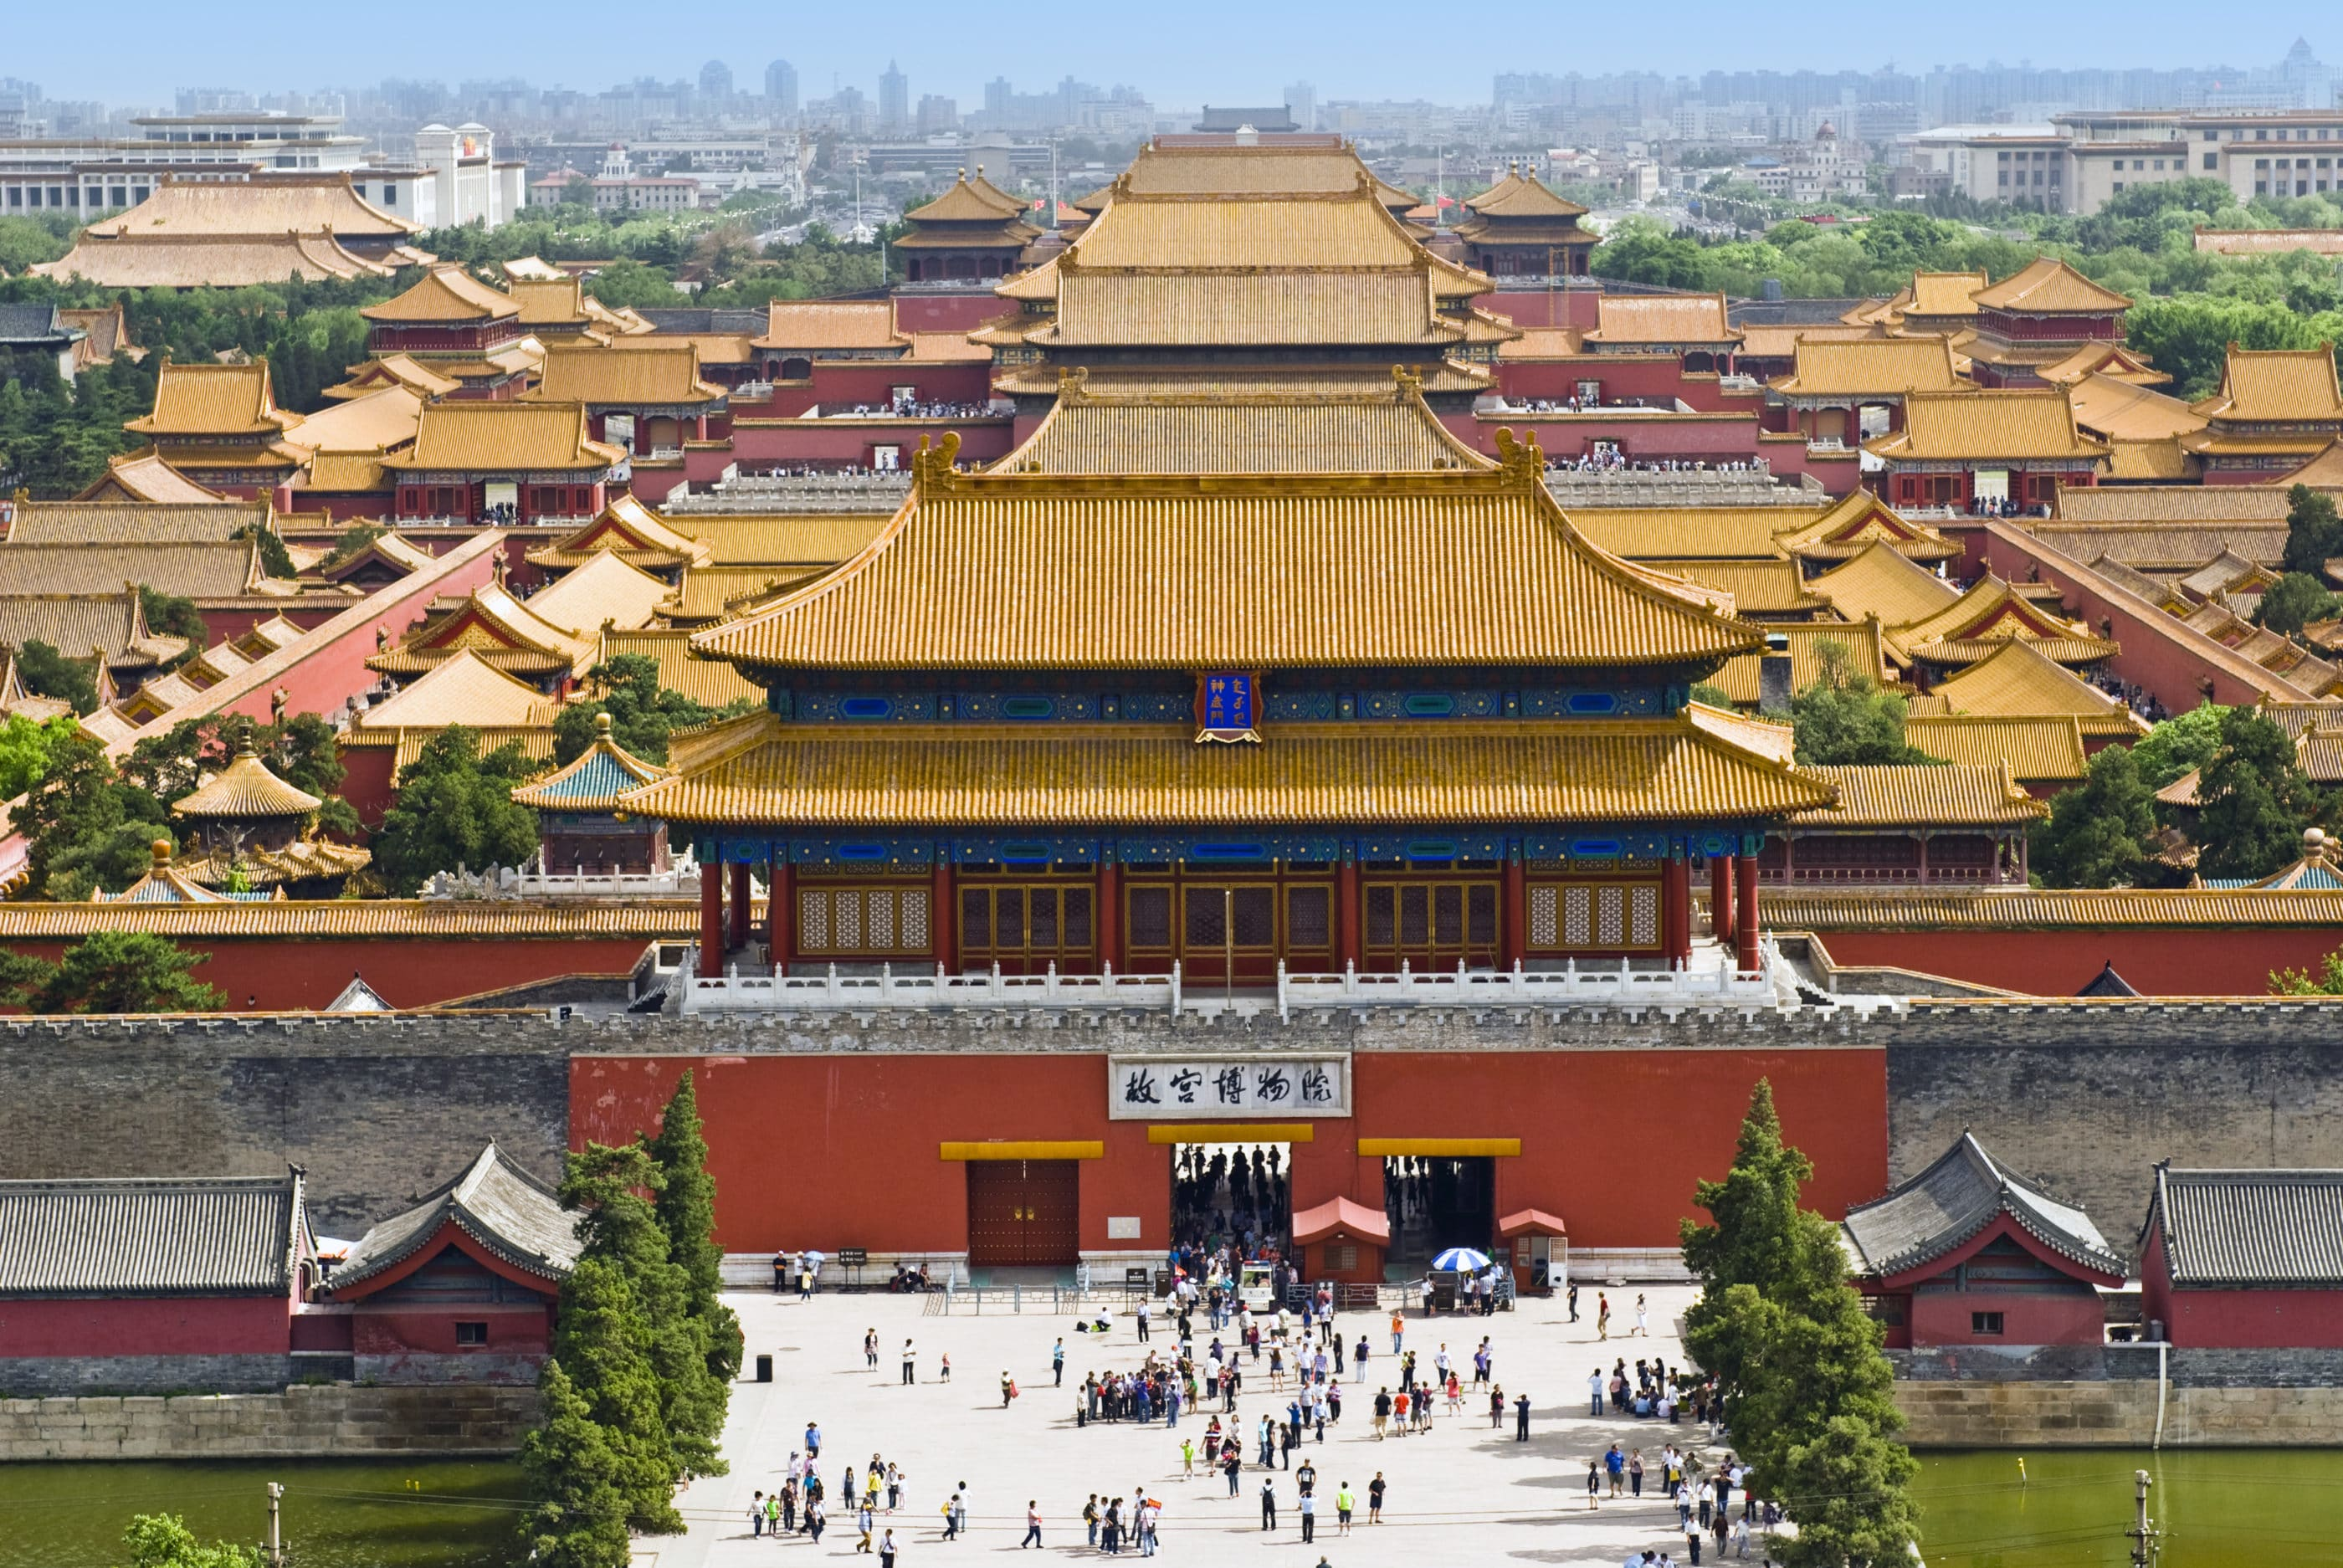 Things to do in Beijing: Forbidden City